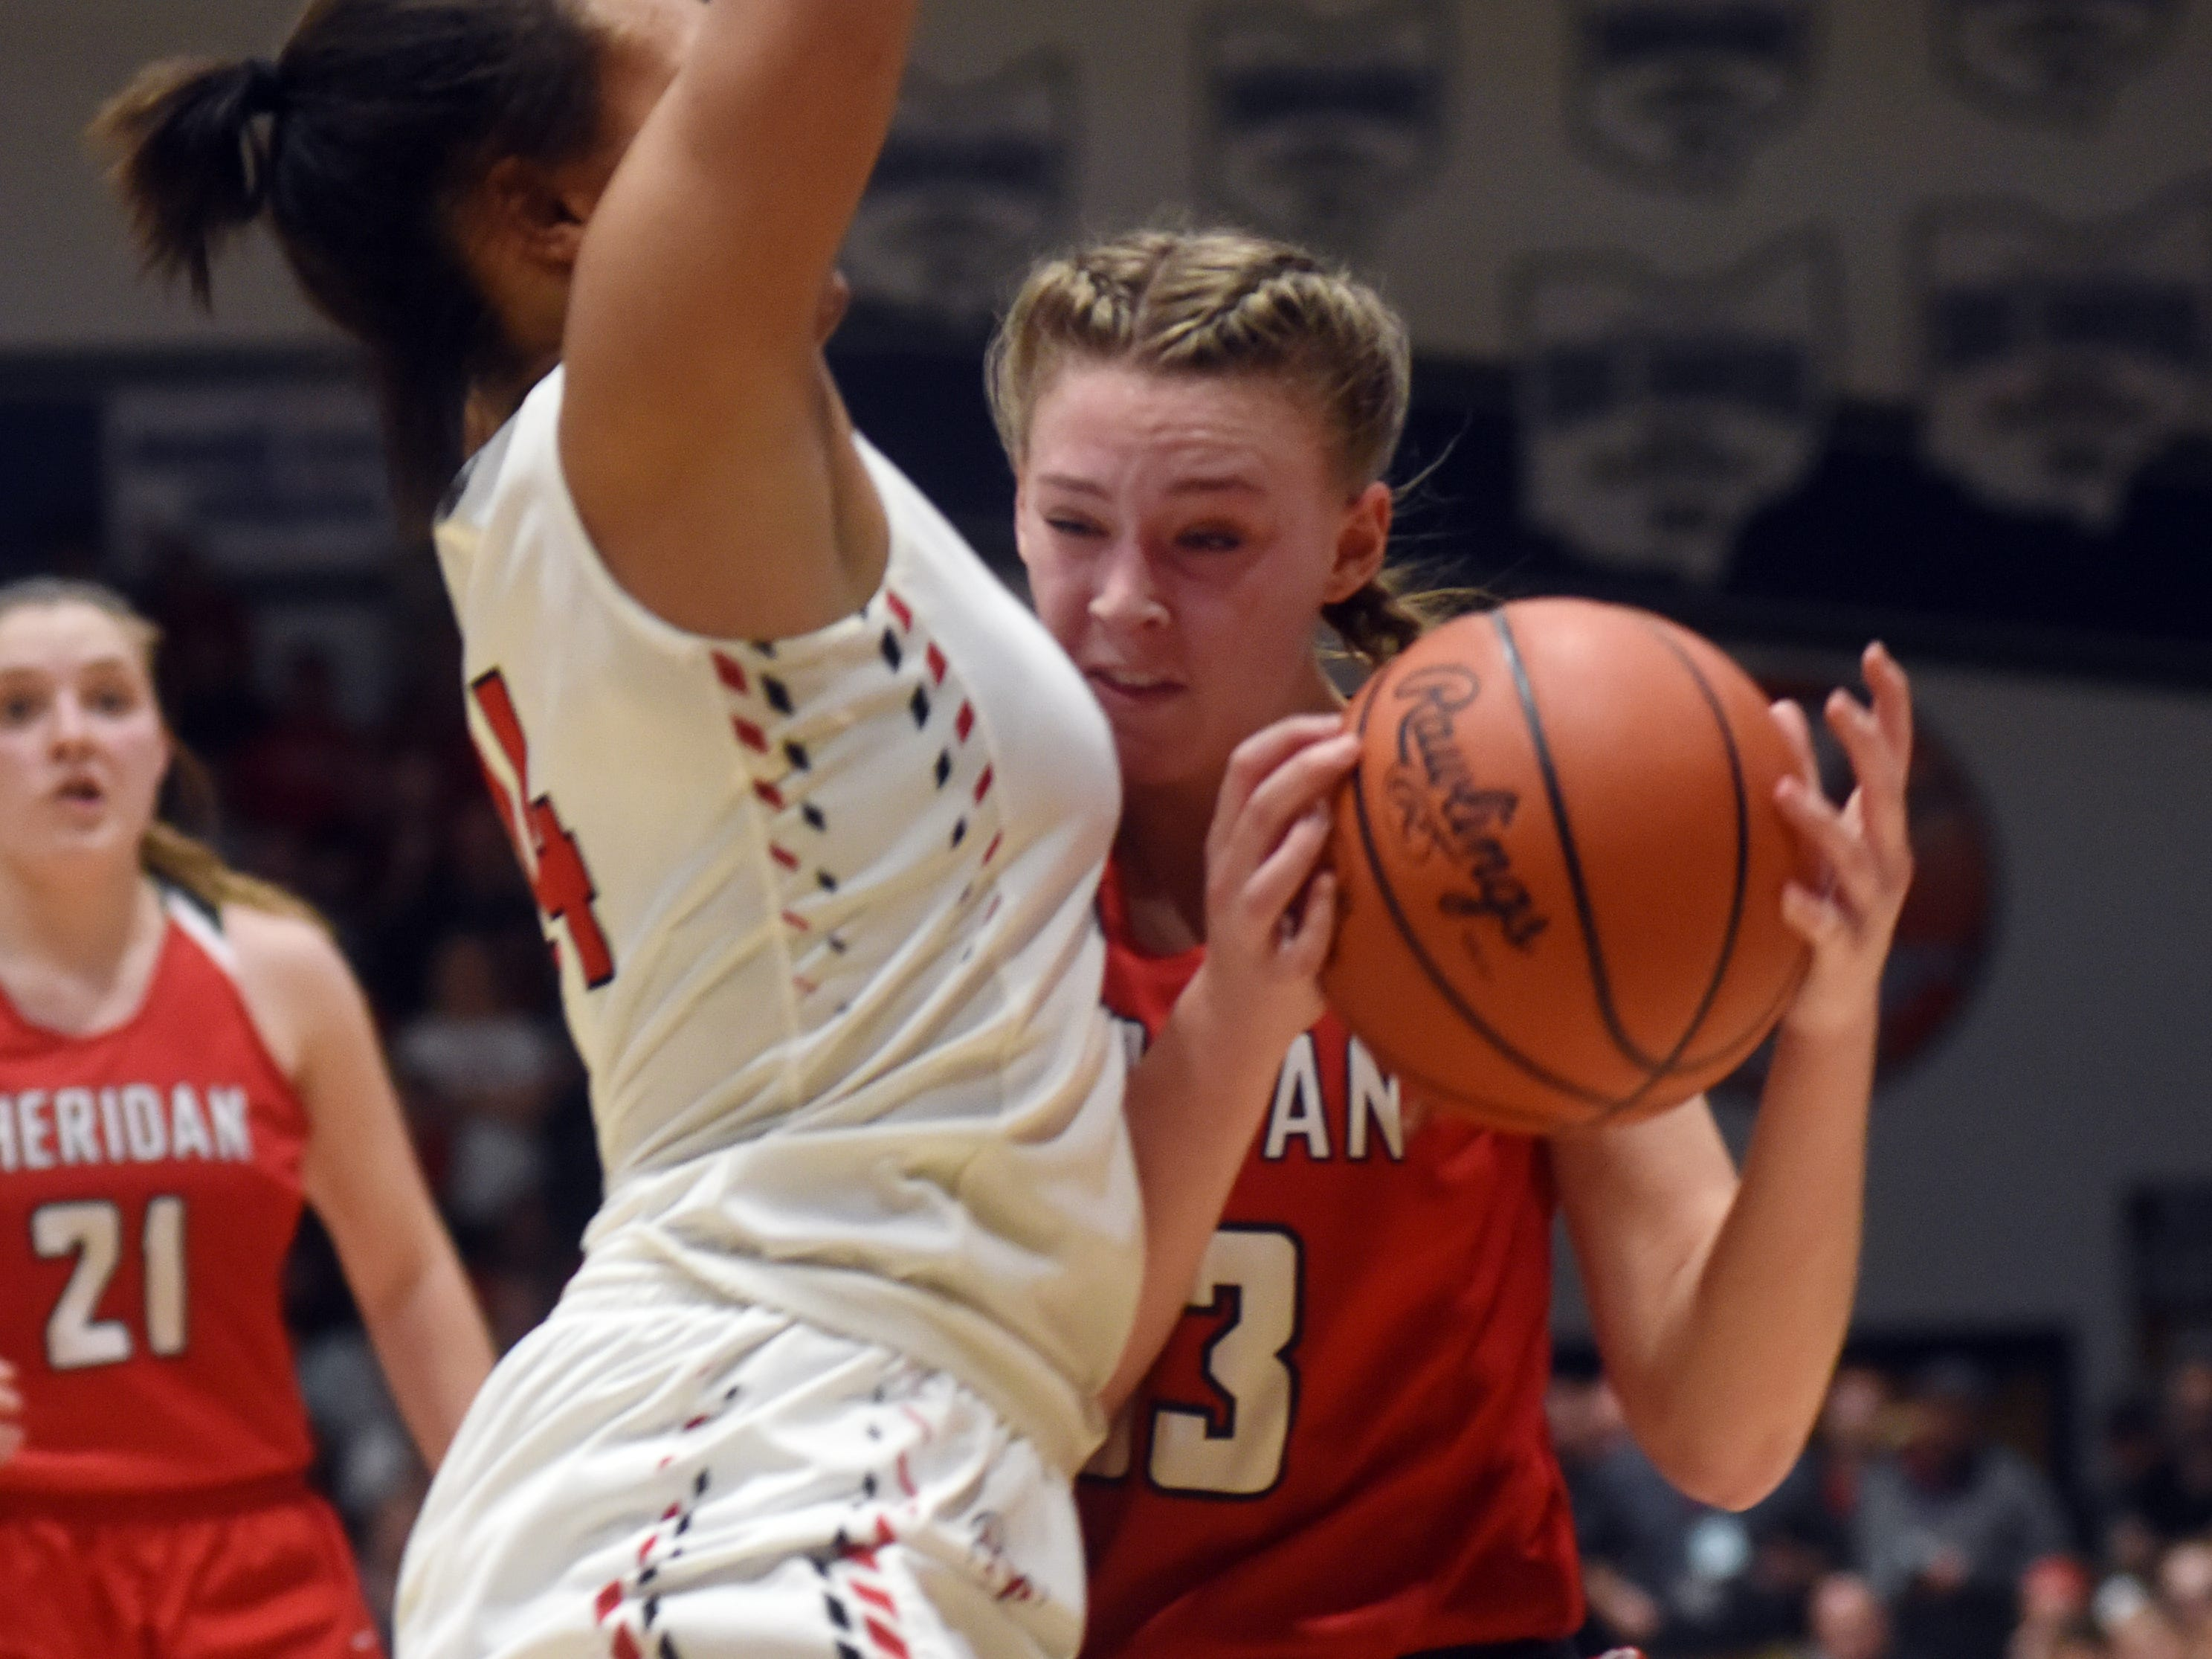 Emma Conrad is met the lane by New Philadelphia's Aaliyah Currence. Sheridan reached its first state tournament since 2004 with a 48-46 win against New Philadelphia on Friday night at Winland Memorial Gymnasium.